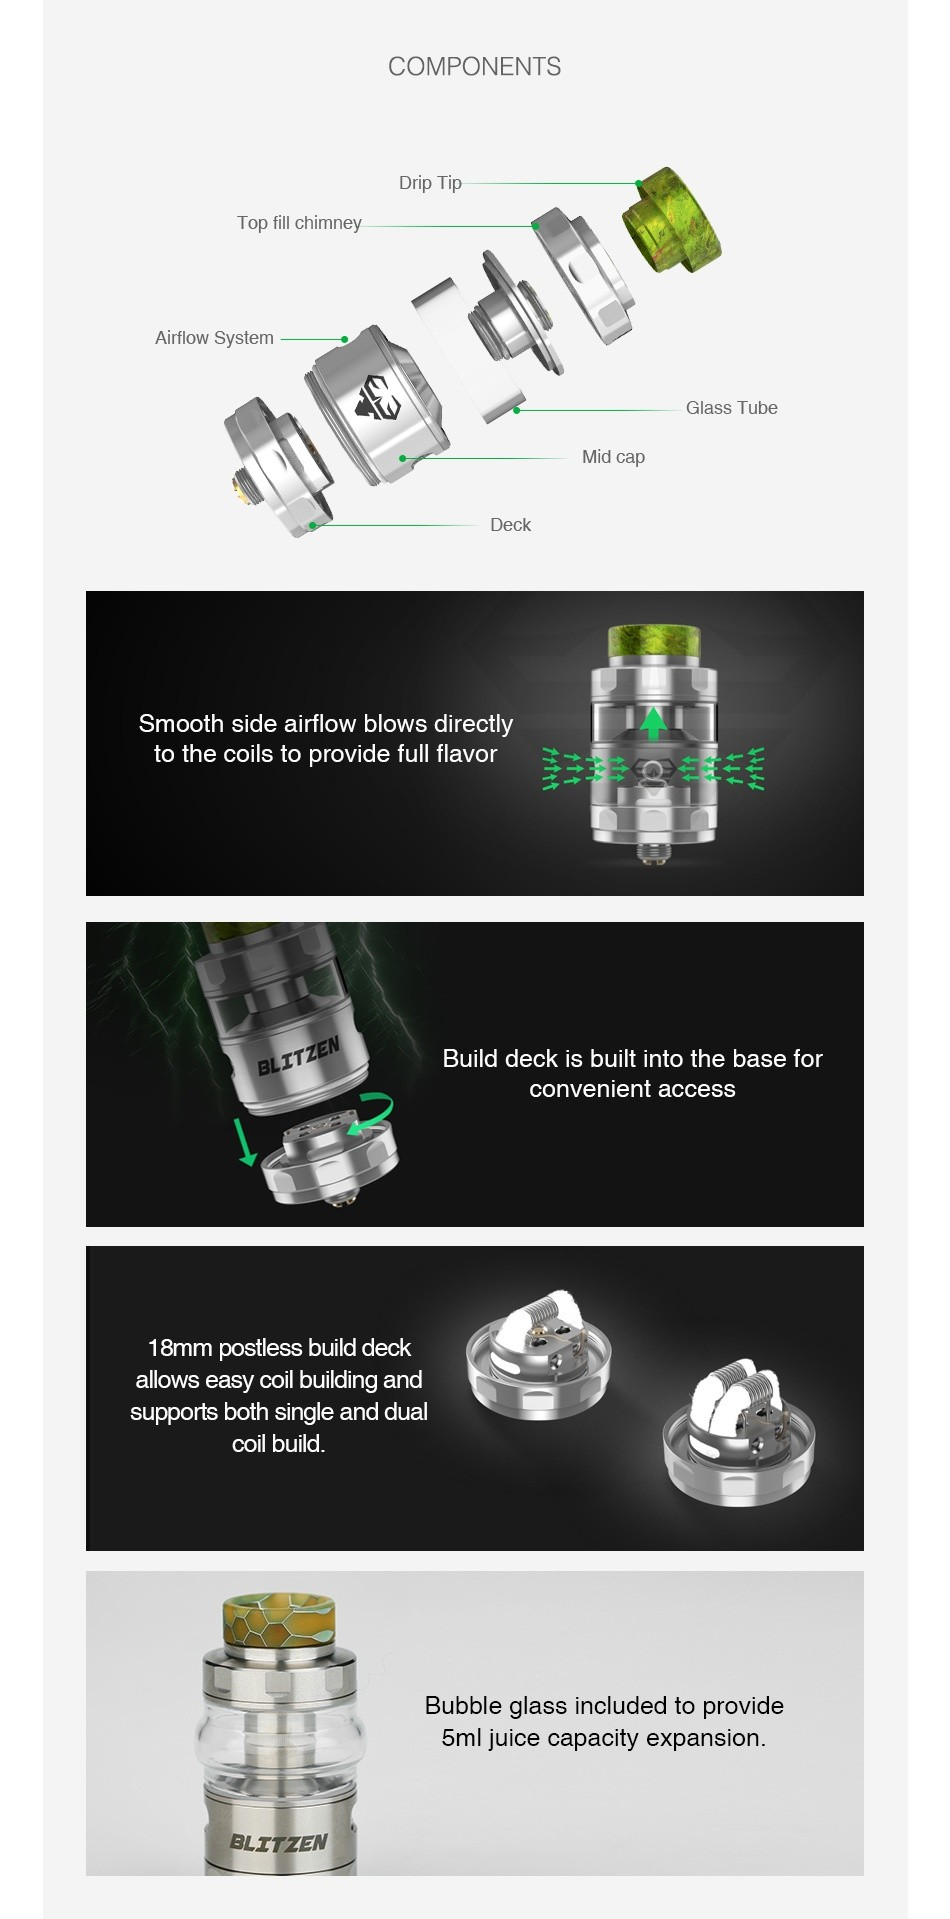 GeekVape Blitzen RTA 2ml/5ml COMPONENTS Drip T Top fill chimney Airflow System Mid cap Deck Smooth side airflow blows directly to the coils to provide full flavor Build deck is built into the base for convenient access 18mm postless build deck allows easy coil building and supports both single and dual coil build Bubble glass included to provide 5ml juice capacity expansion BLITZEN